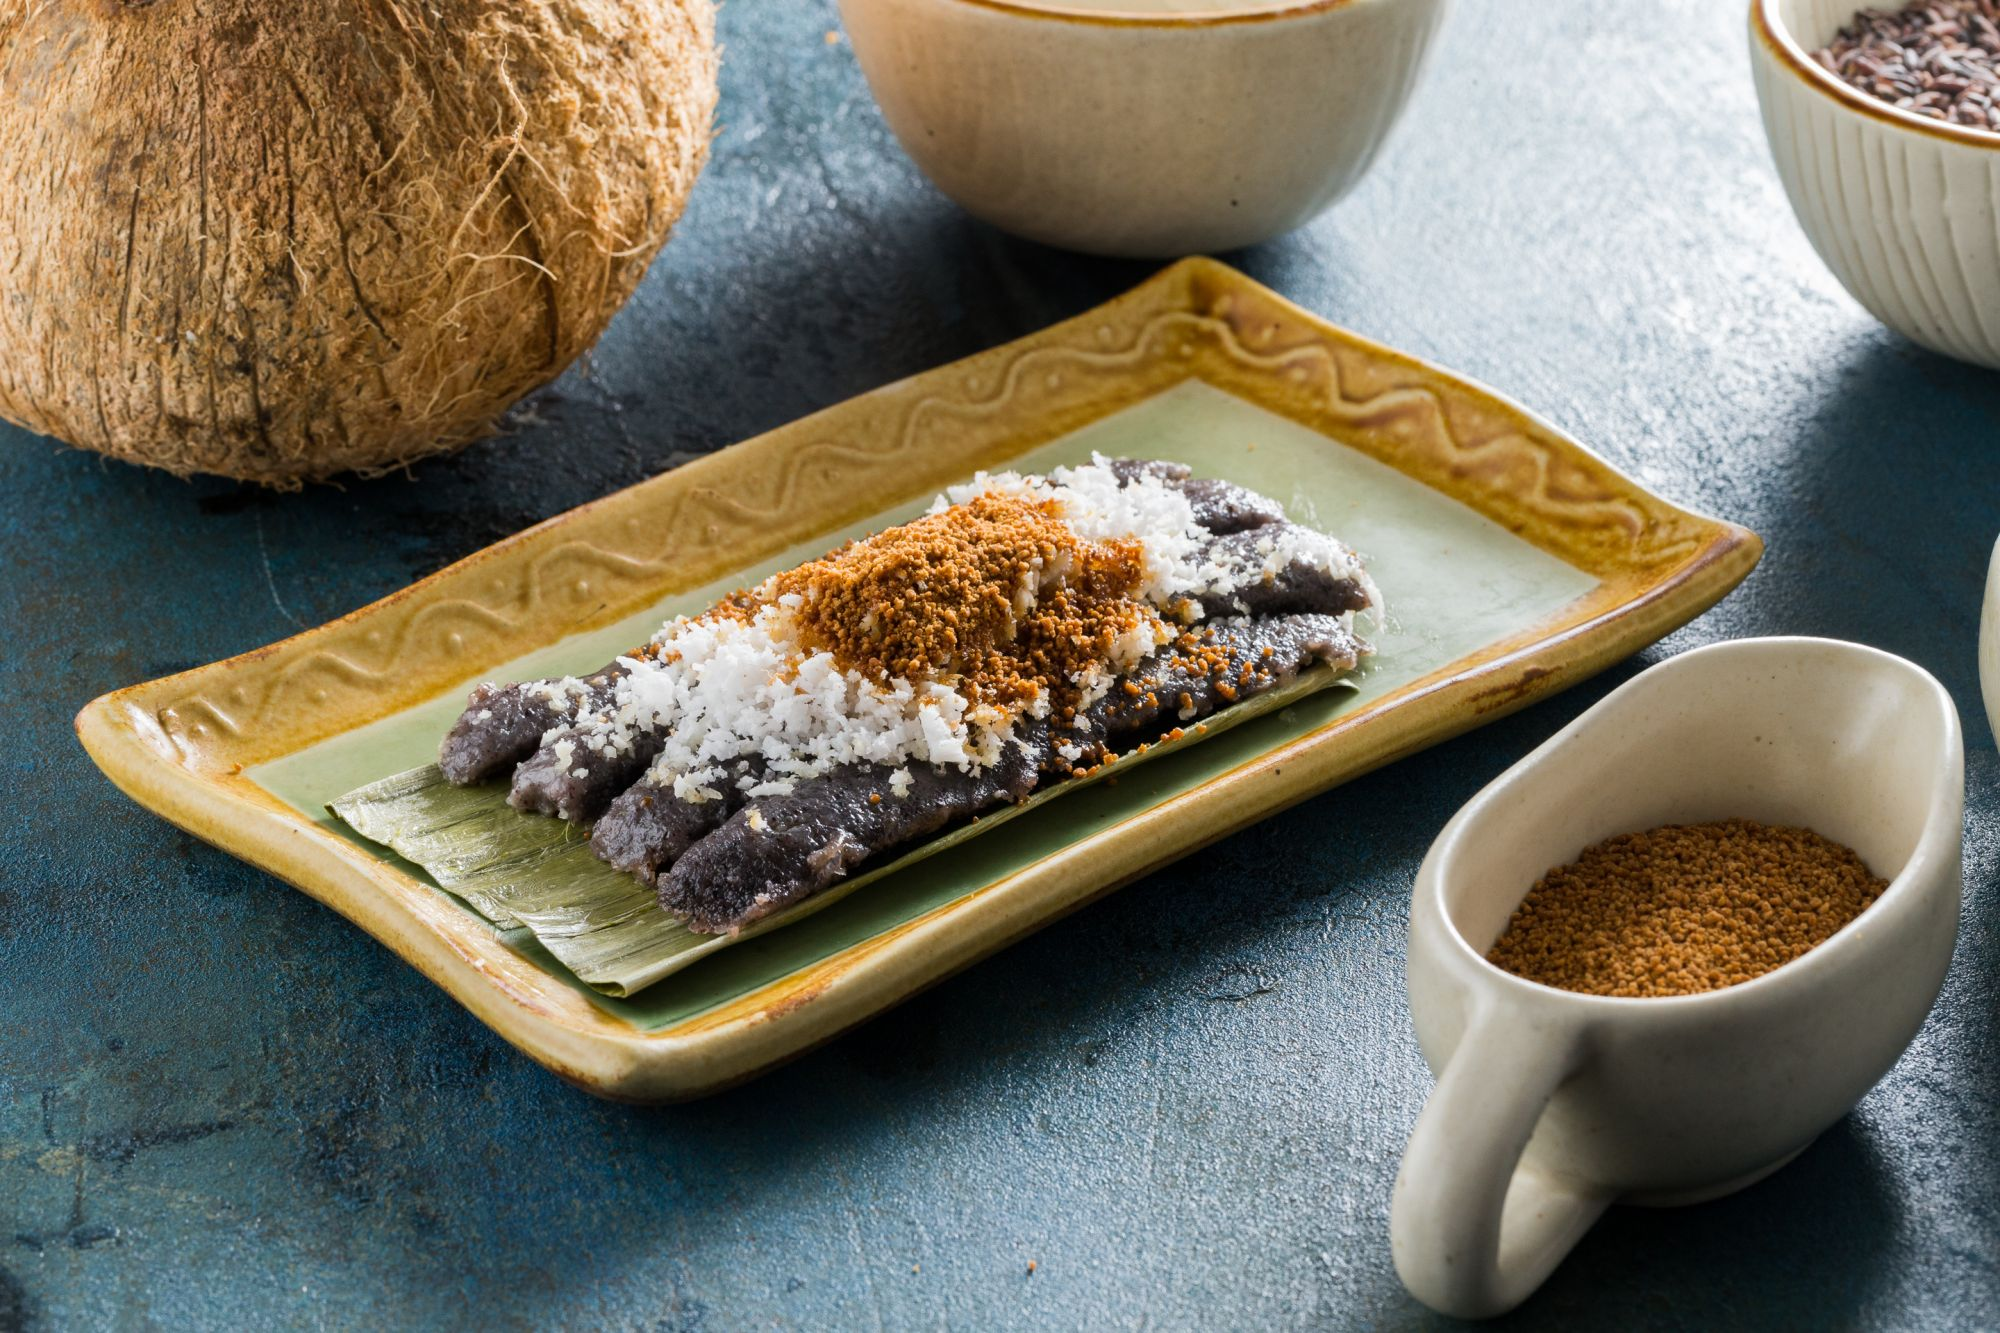 This Christmas, Indulge in Your Favorite Filipino Desserts at Sentro 1771